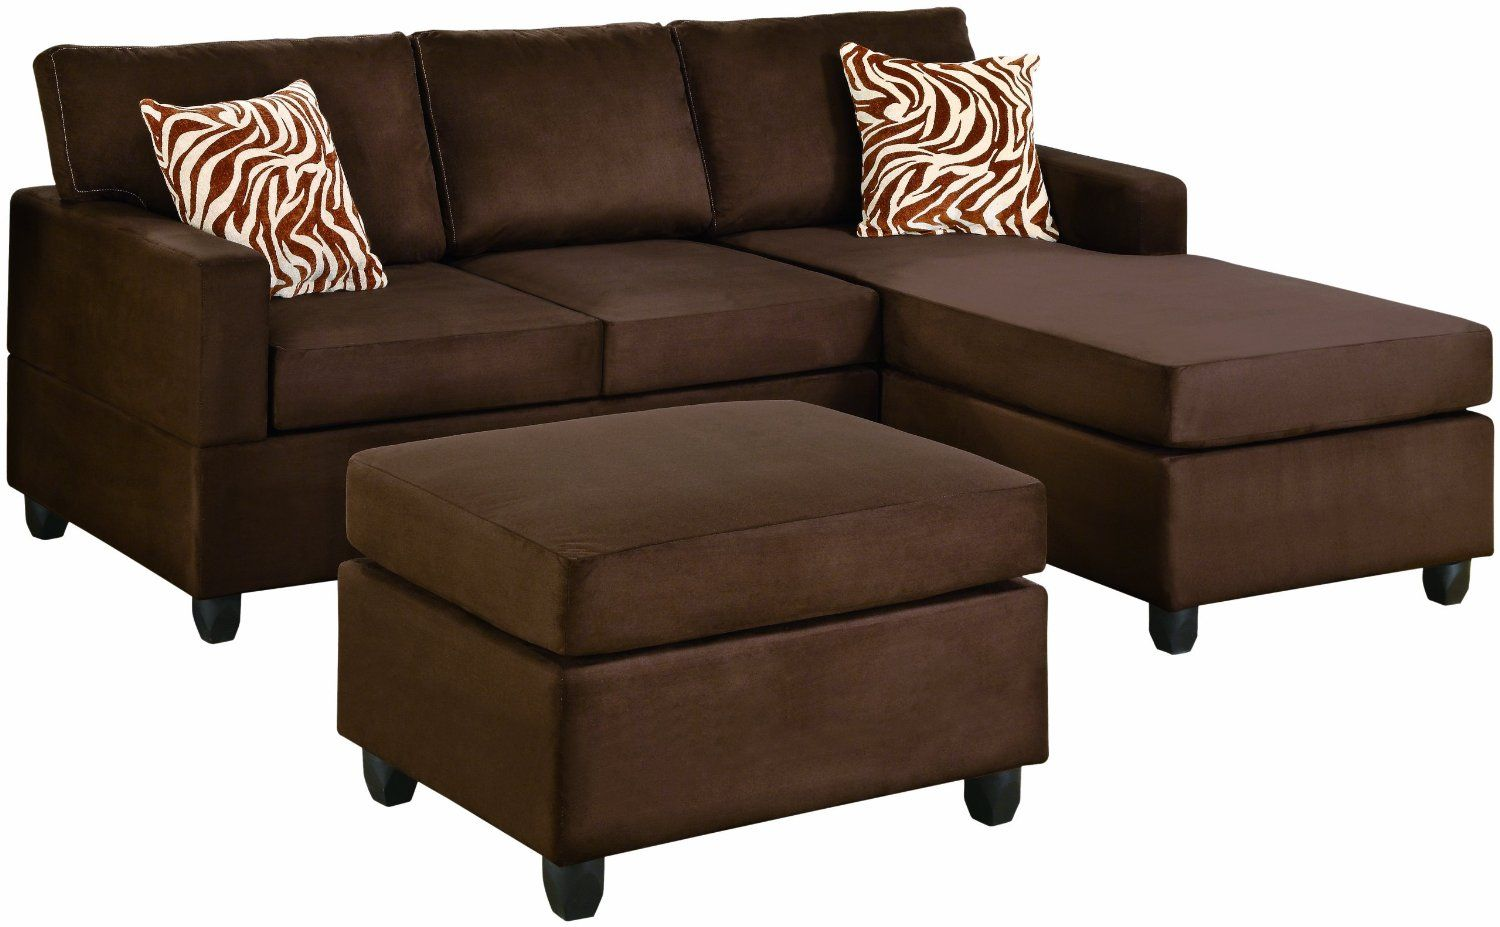 Brown chaise sofa i love this couch minus those pillows deco